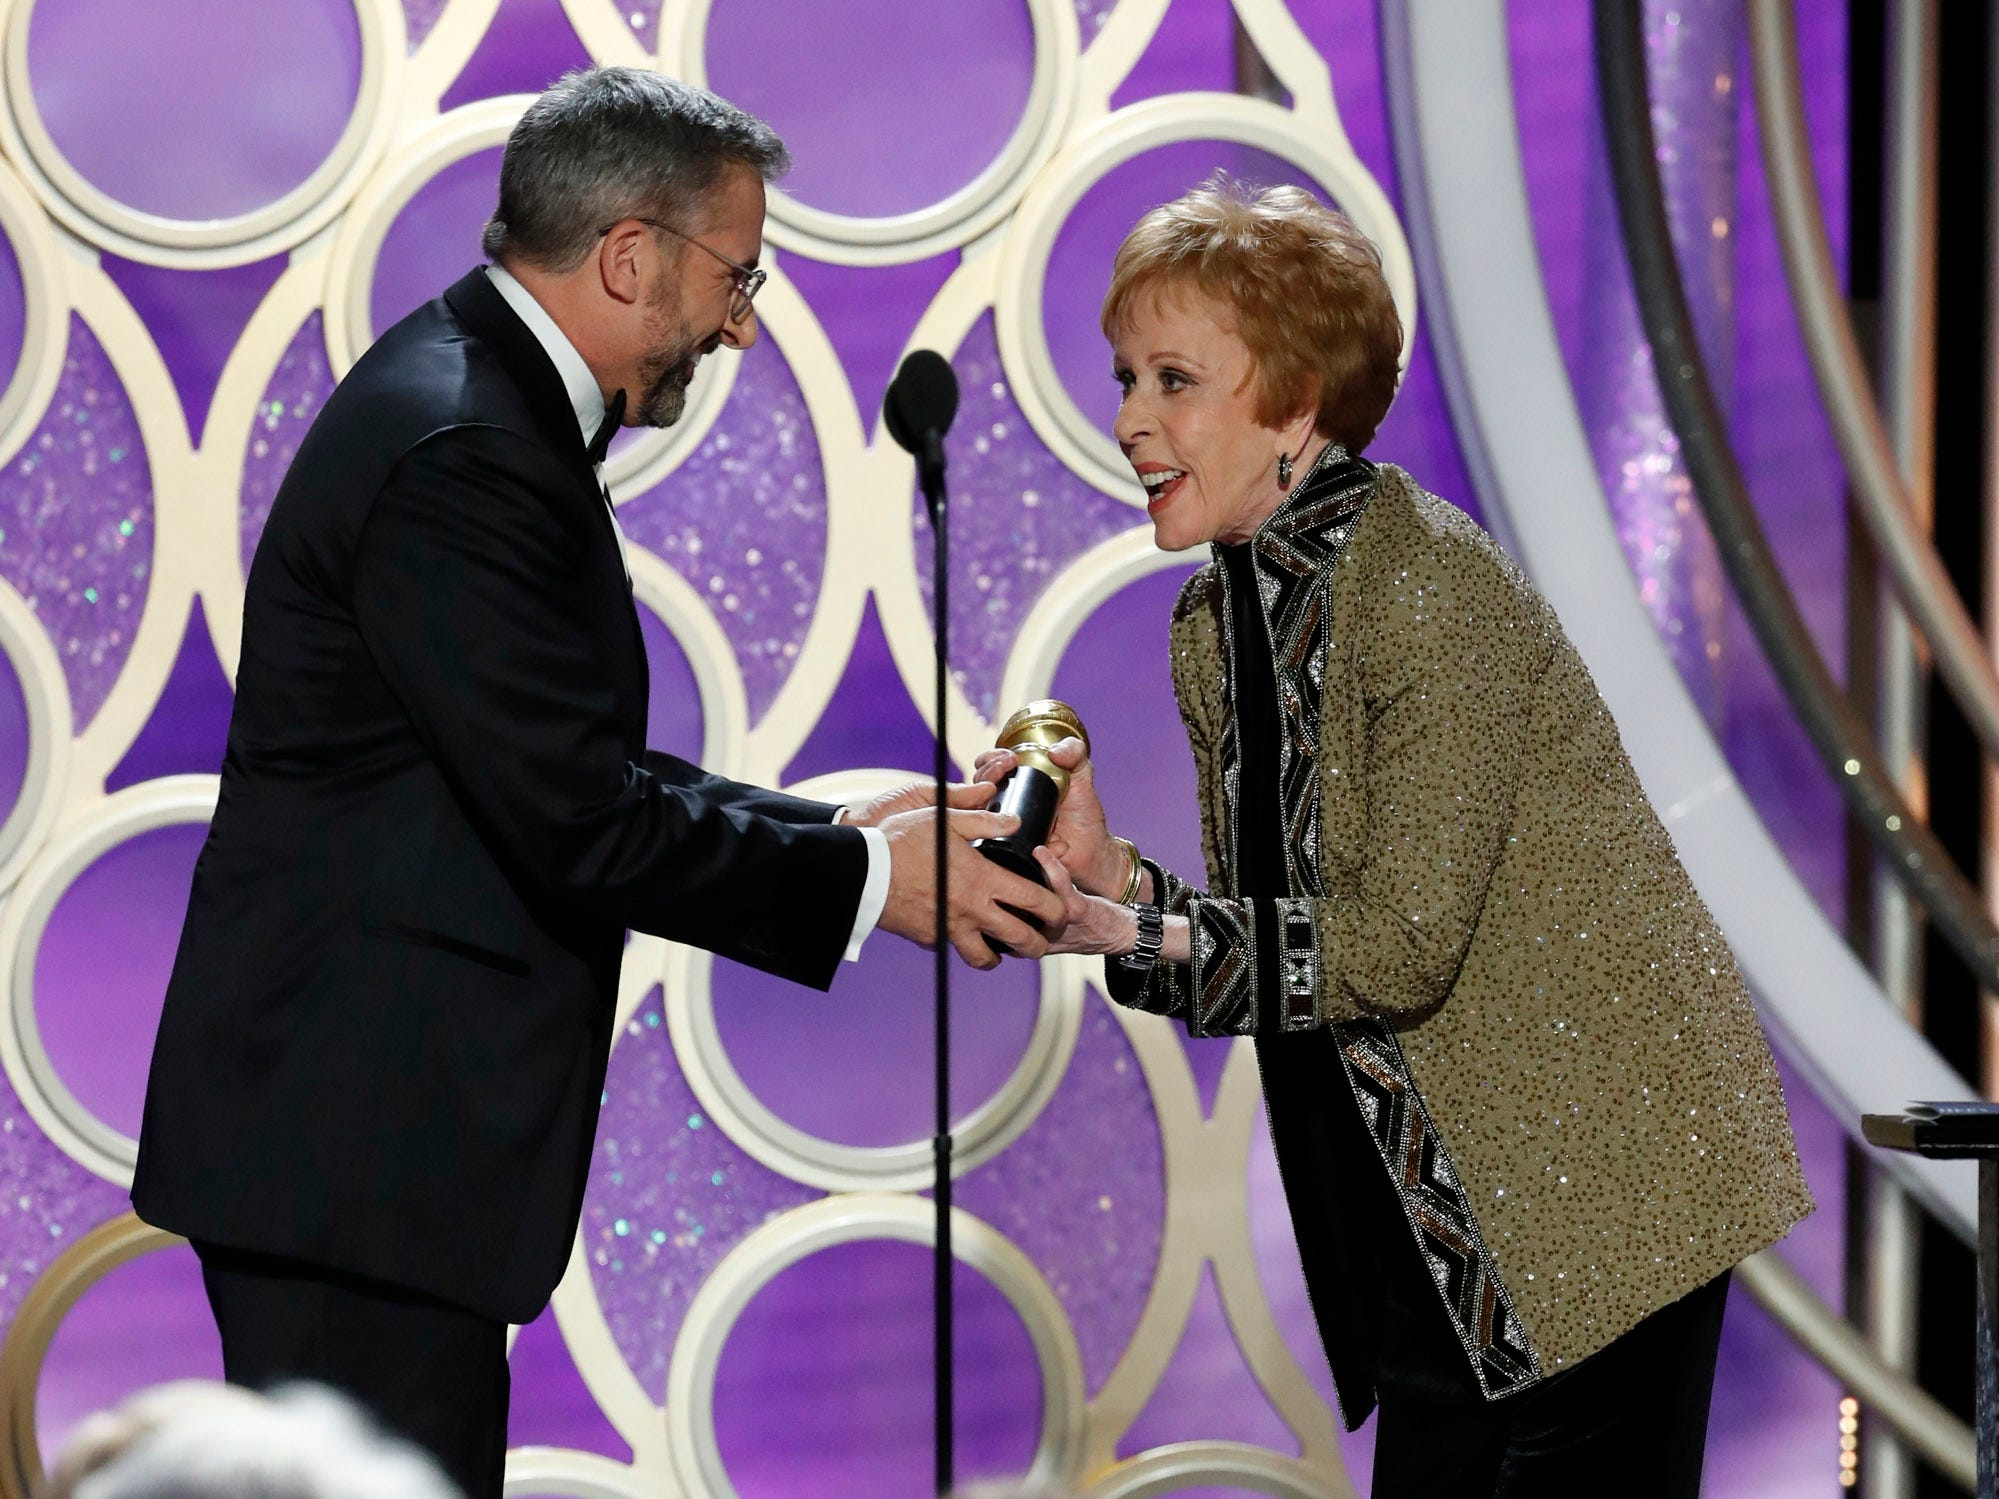 Steve Carell presents Carol Burnett with the  Carol Burnett TV Achievement Award during the 76th Golden Globe Awards.